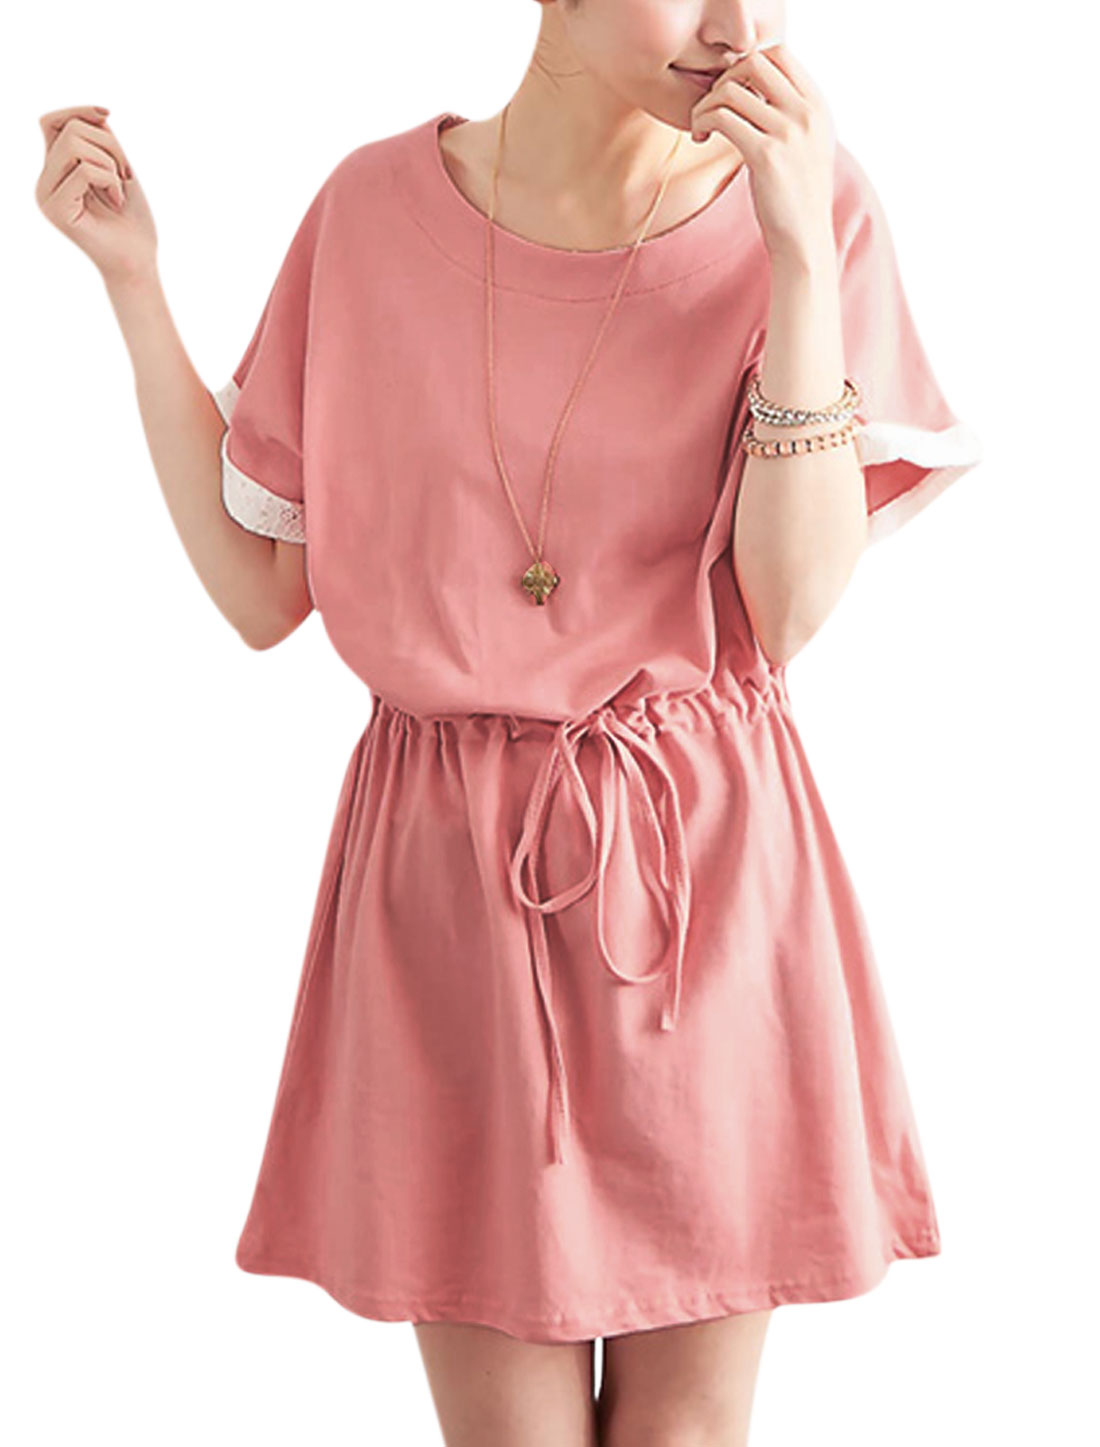 Lady Drawstring Waist Lace Detail Cozy Fit Tunic Dress Pink XS